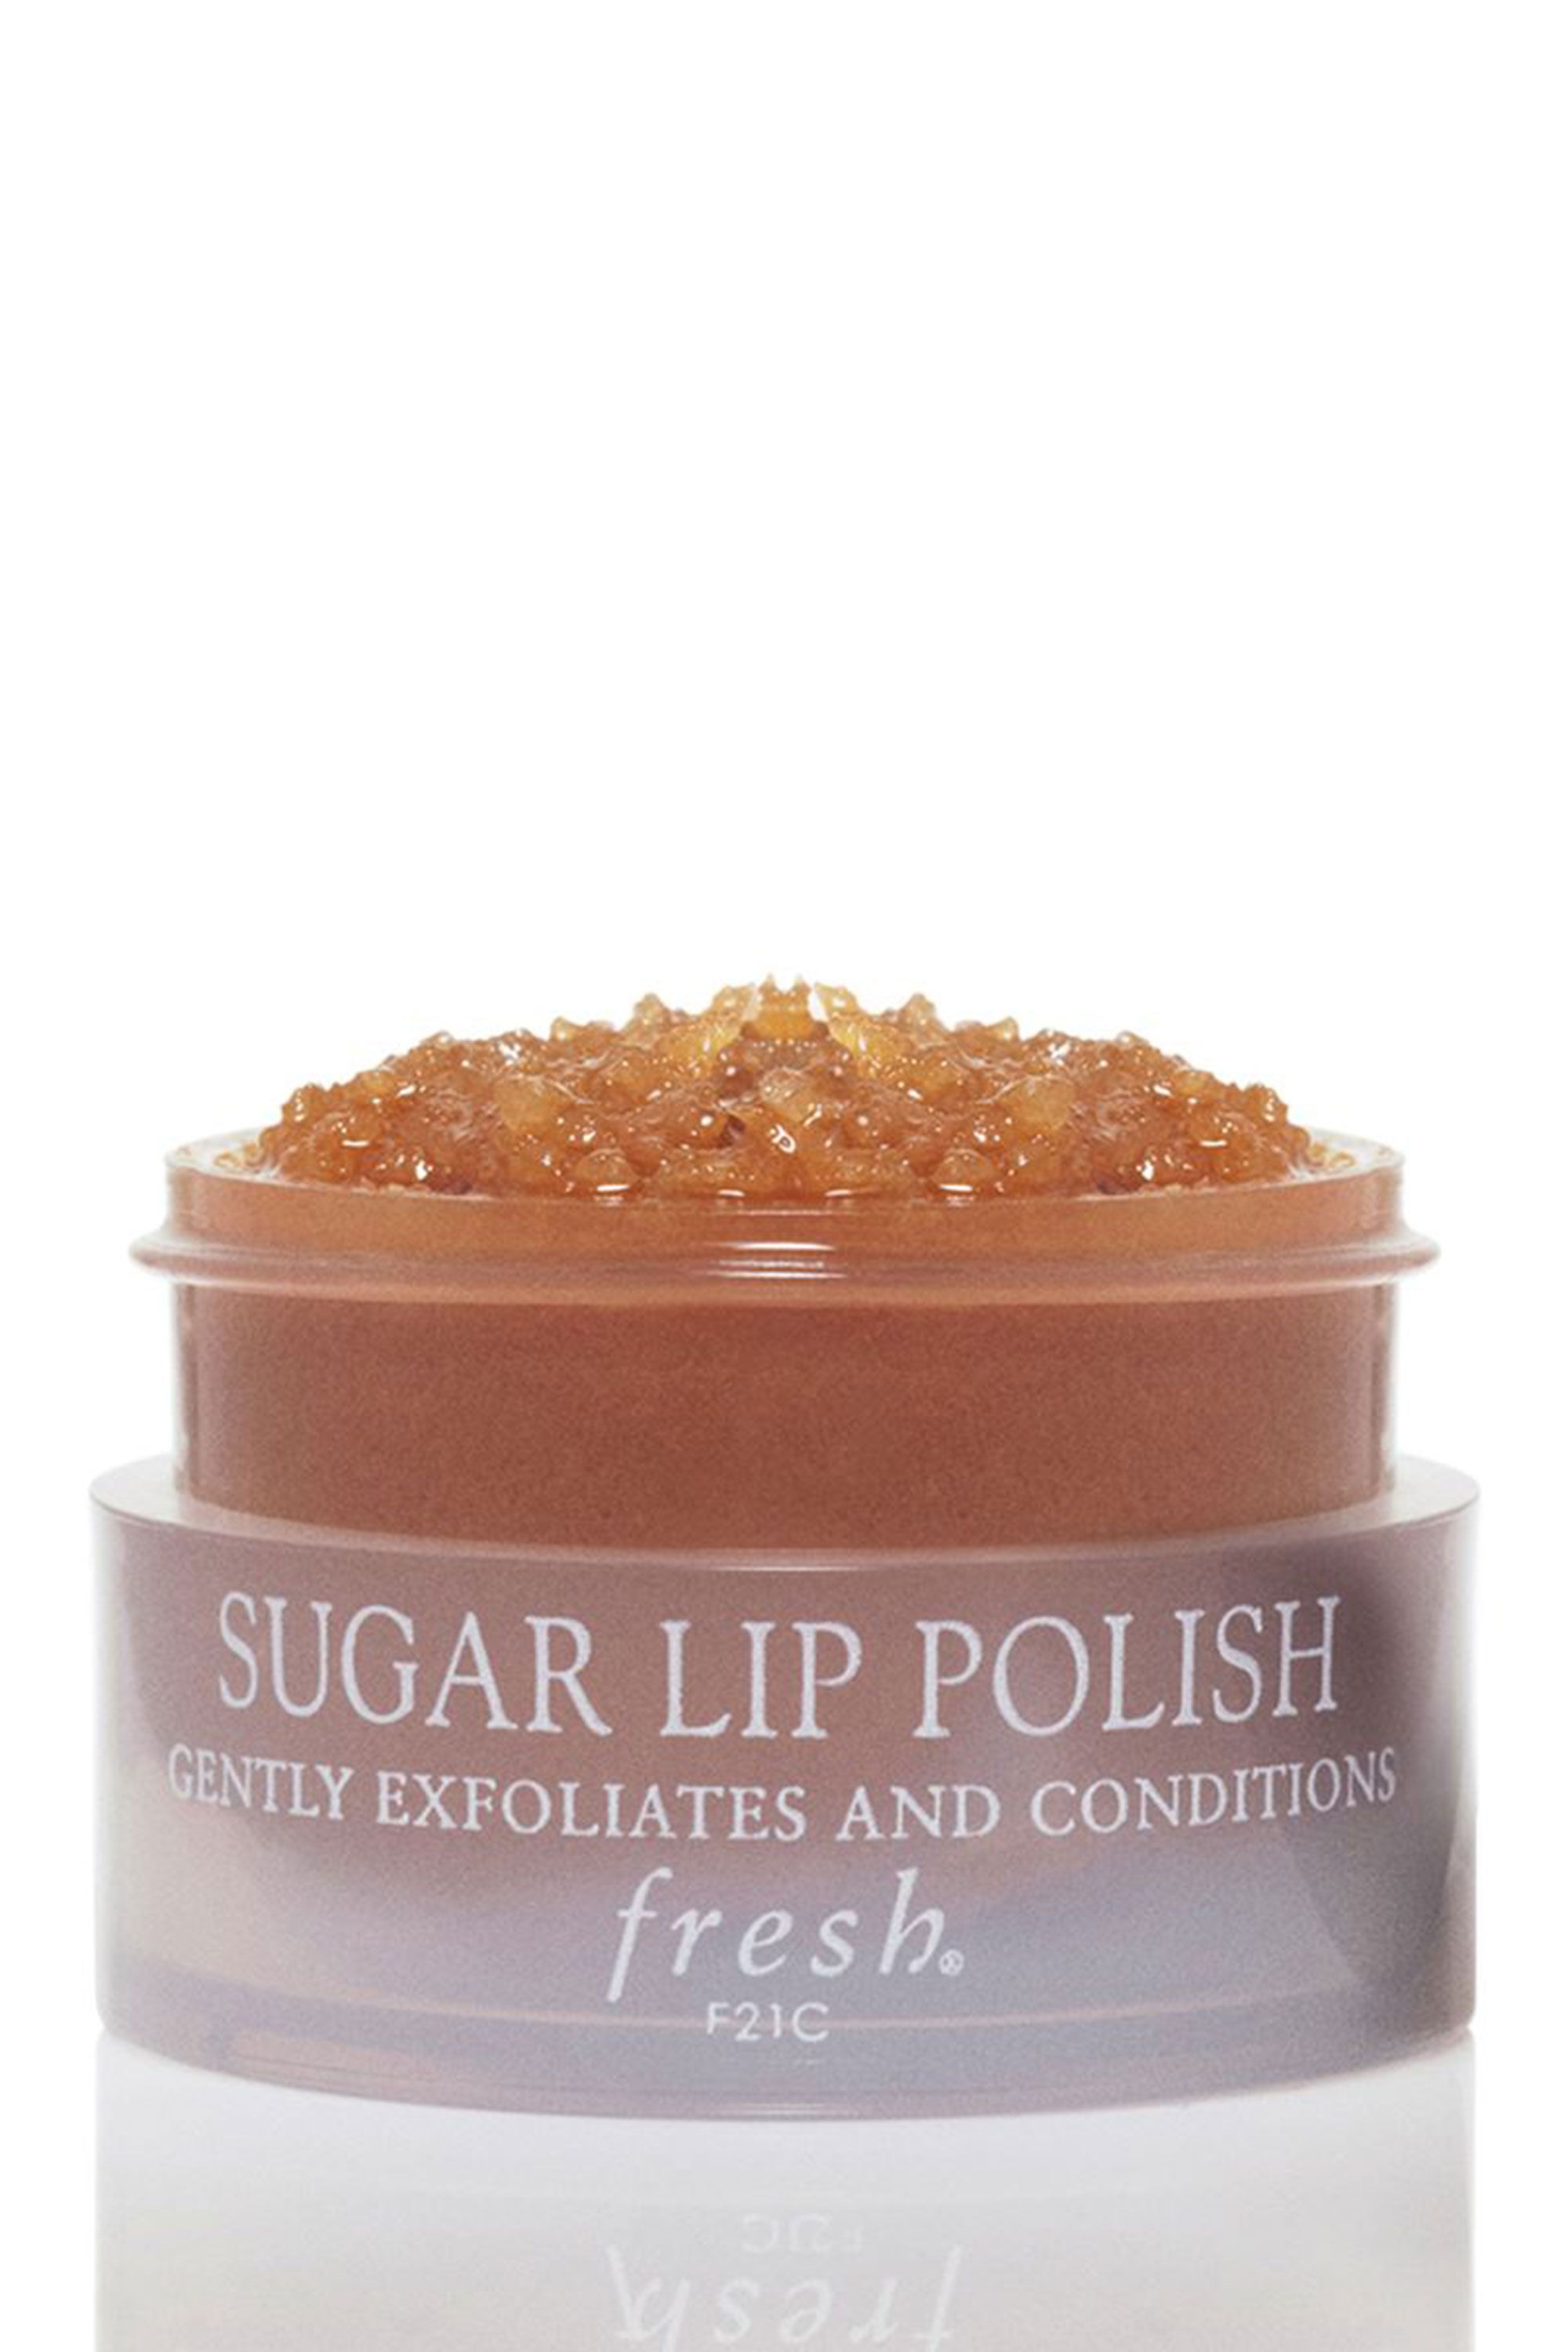 10 Of The Best Lip Scrubs How To Exfoliate Dry Lips